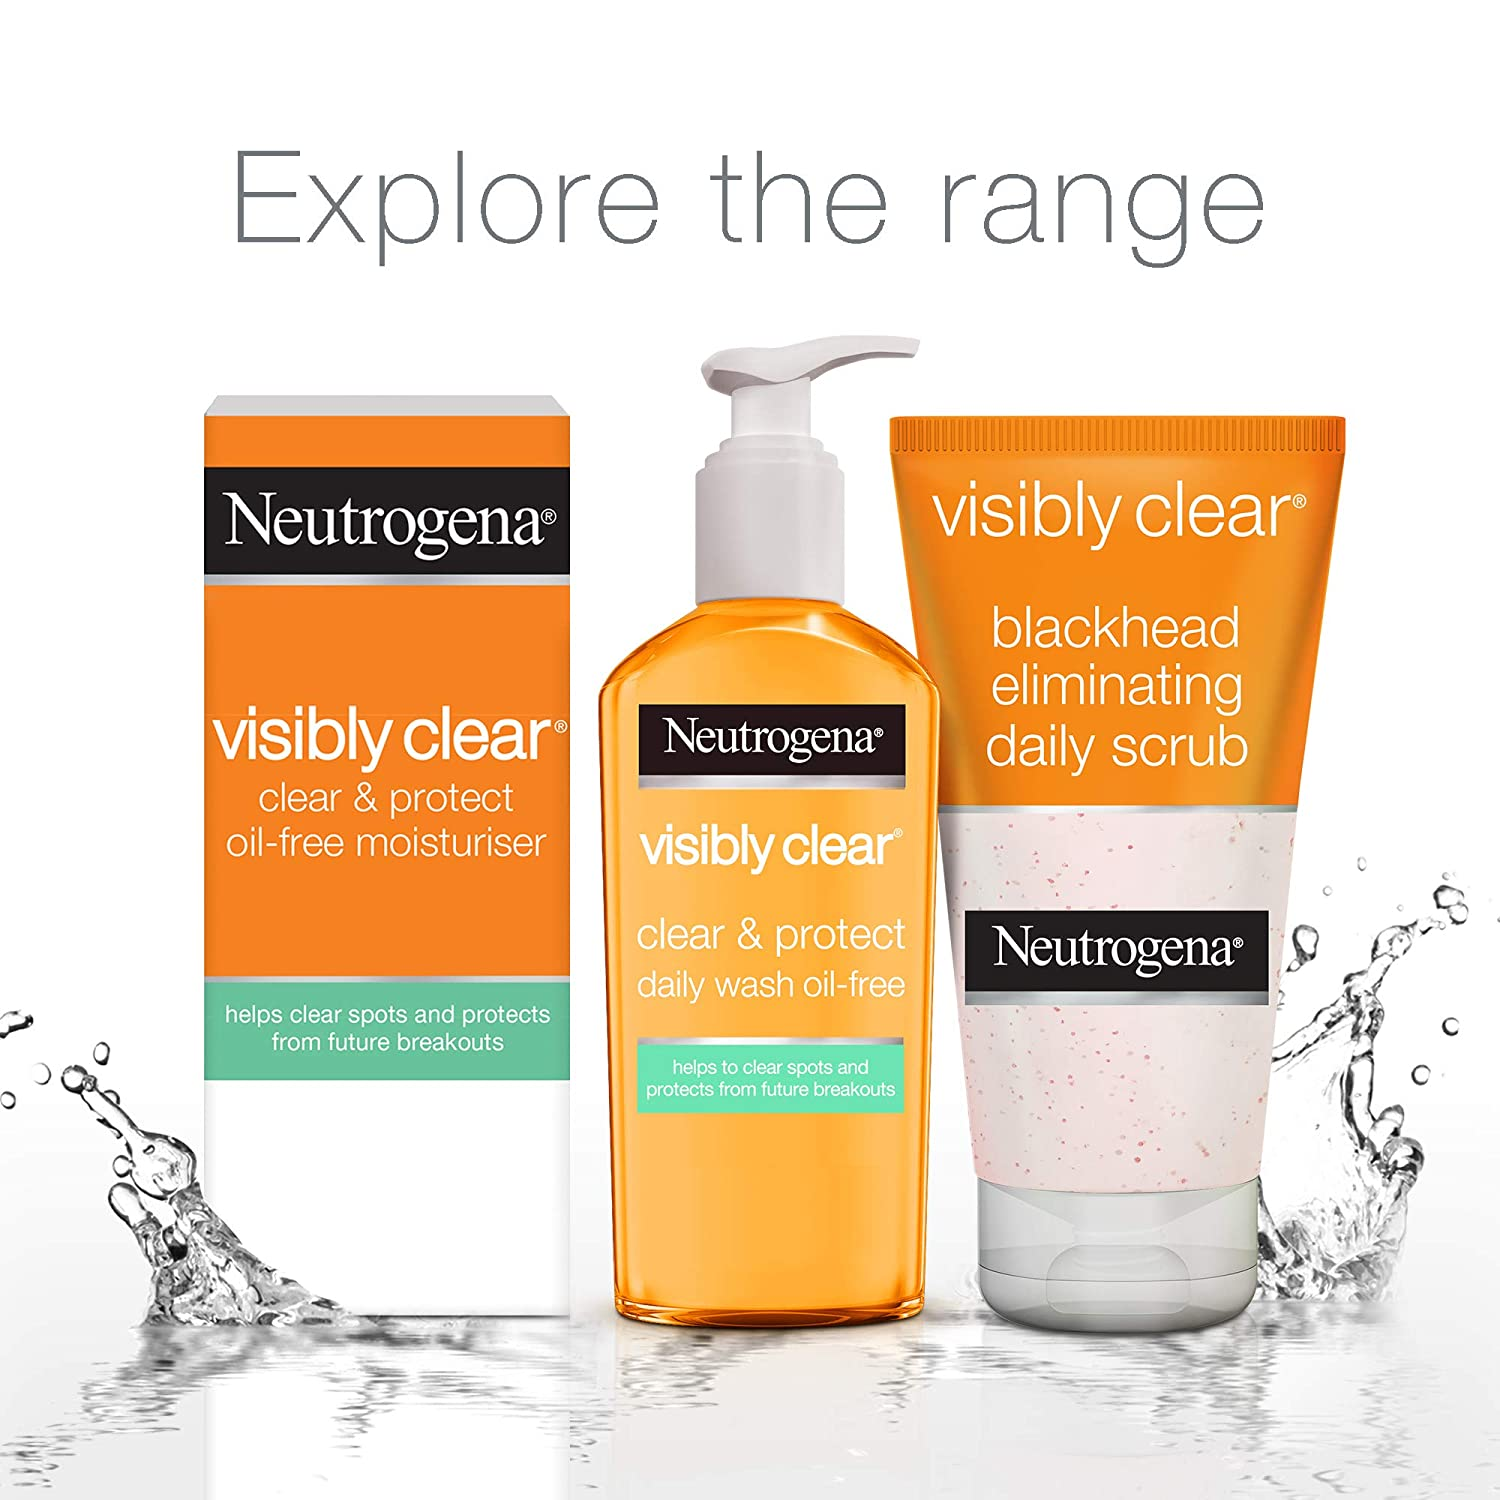 Neutrogena Visibly Clear Blackheads Eliminating Daily Scrub ...